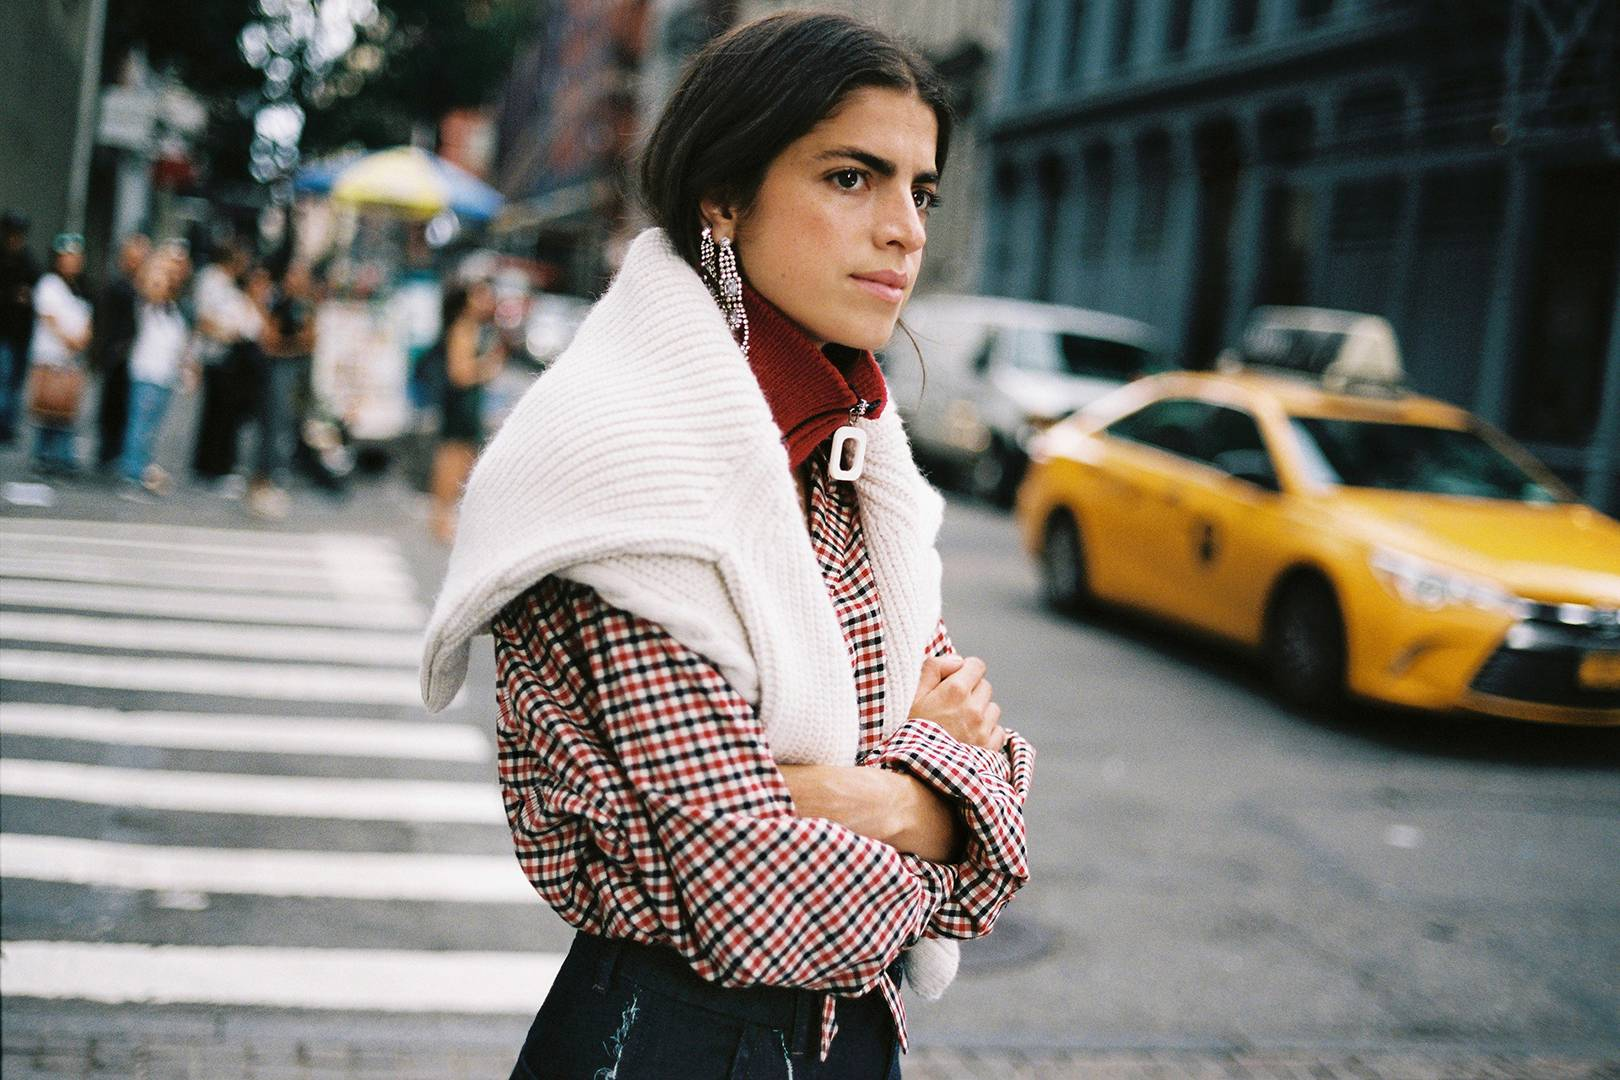 Celebrites Leandra Medine nudes (65 foto and video), Pussy, Paparazzi, Selfie, butt 2015